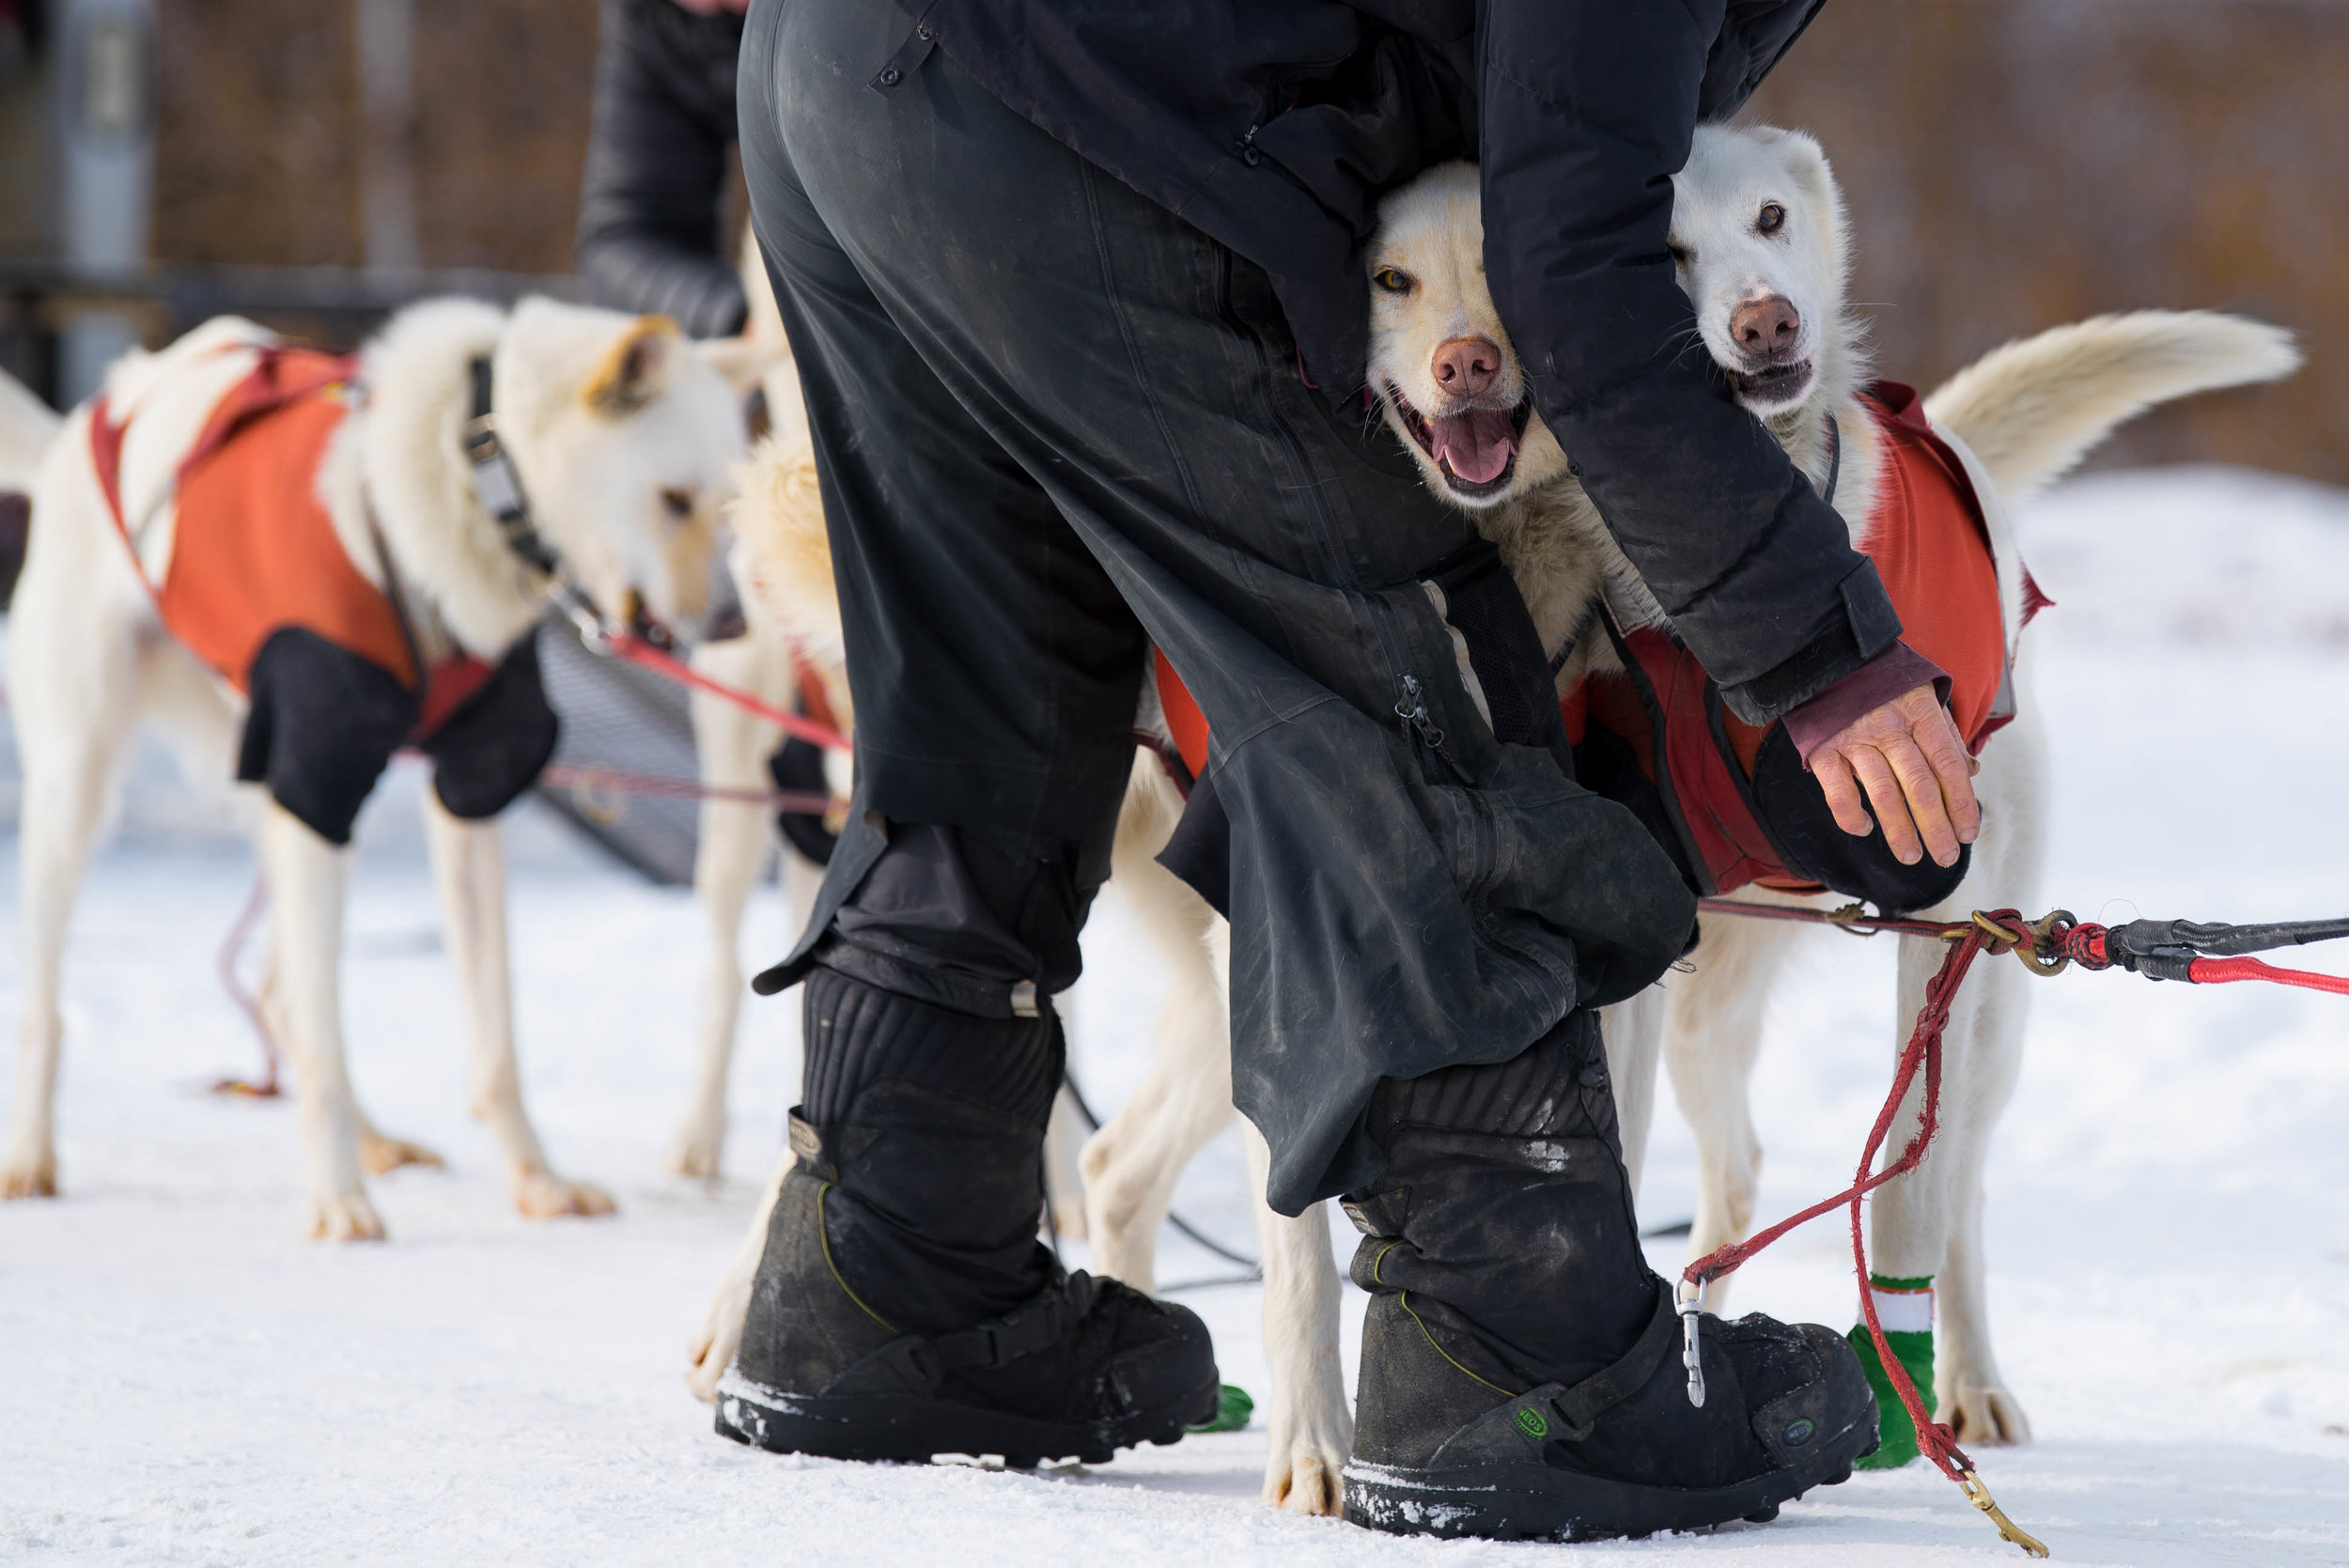 Before a run, each dog is inspected, harnessed, and assigned their position.  Sixteen dogs drive the sled, while the remaining six are on standby in case one of the running dogs becomes fatigued or injured during practice.  The Hilltown Sleddogs are currently preparing for the 250 mile Can-Am Crown International in March.